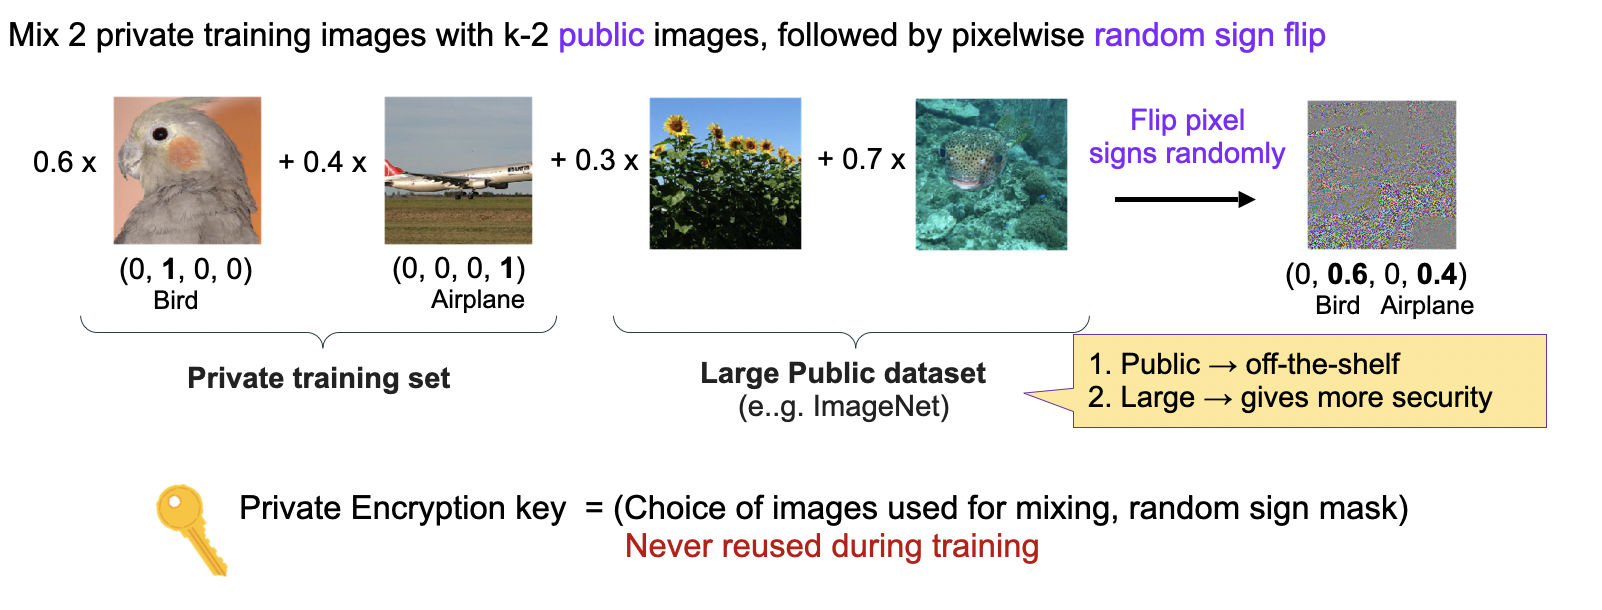 Technical diagram indicating merger of four photos into encrypted image.